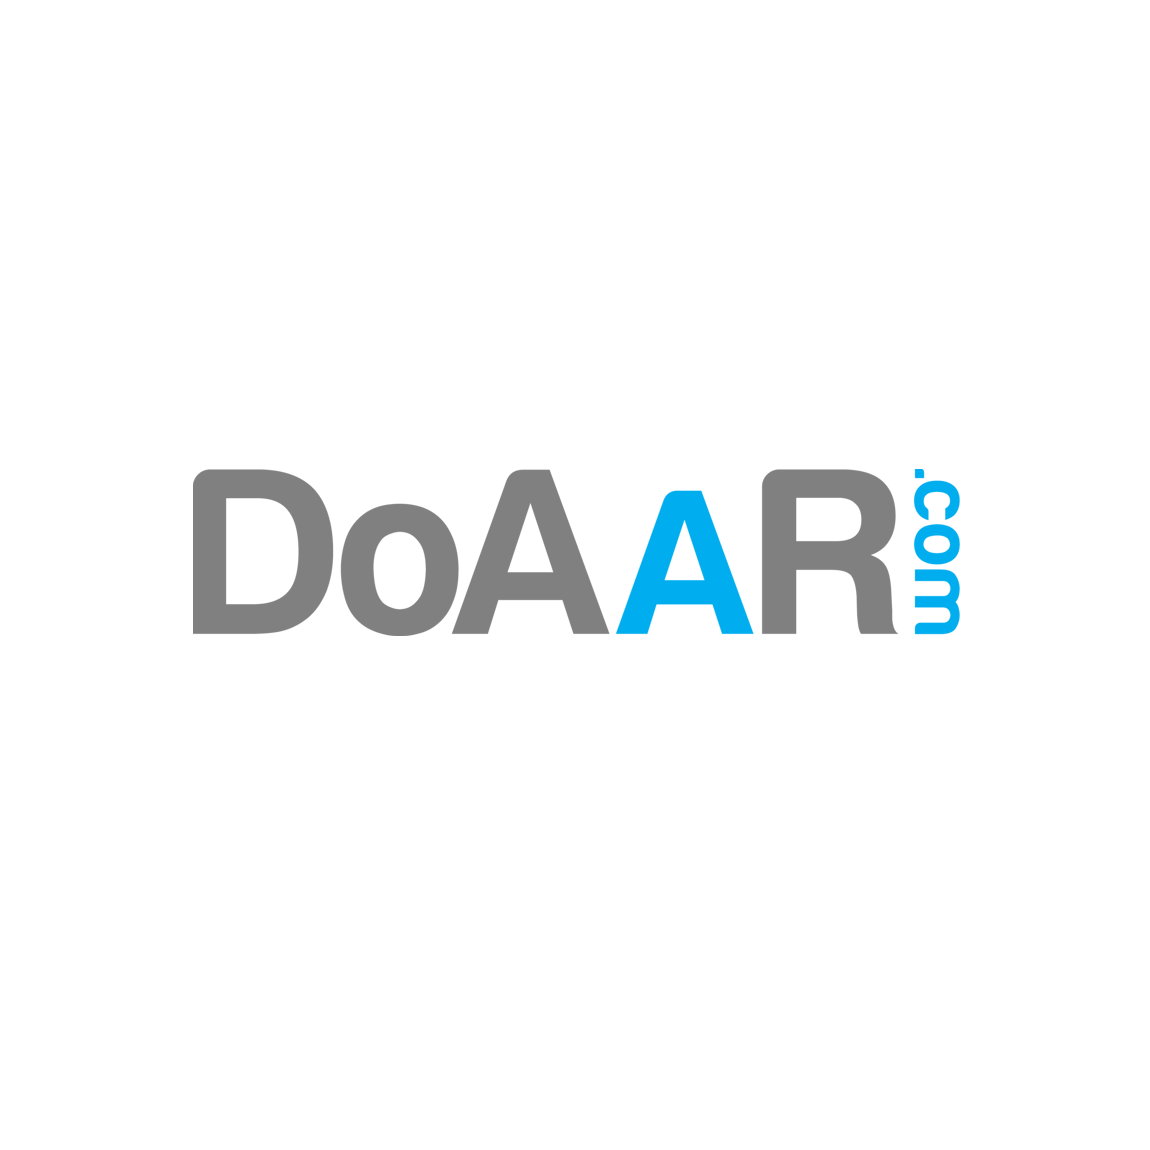 DOAAR: Bookkeeping, Tax & Consulting